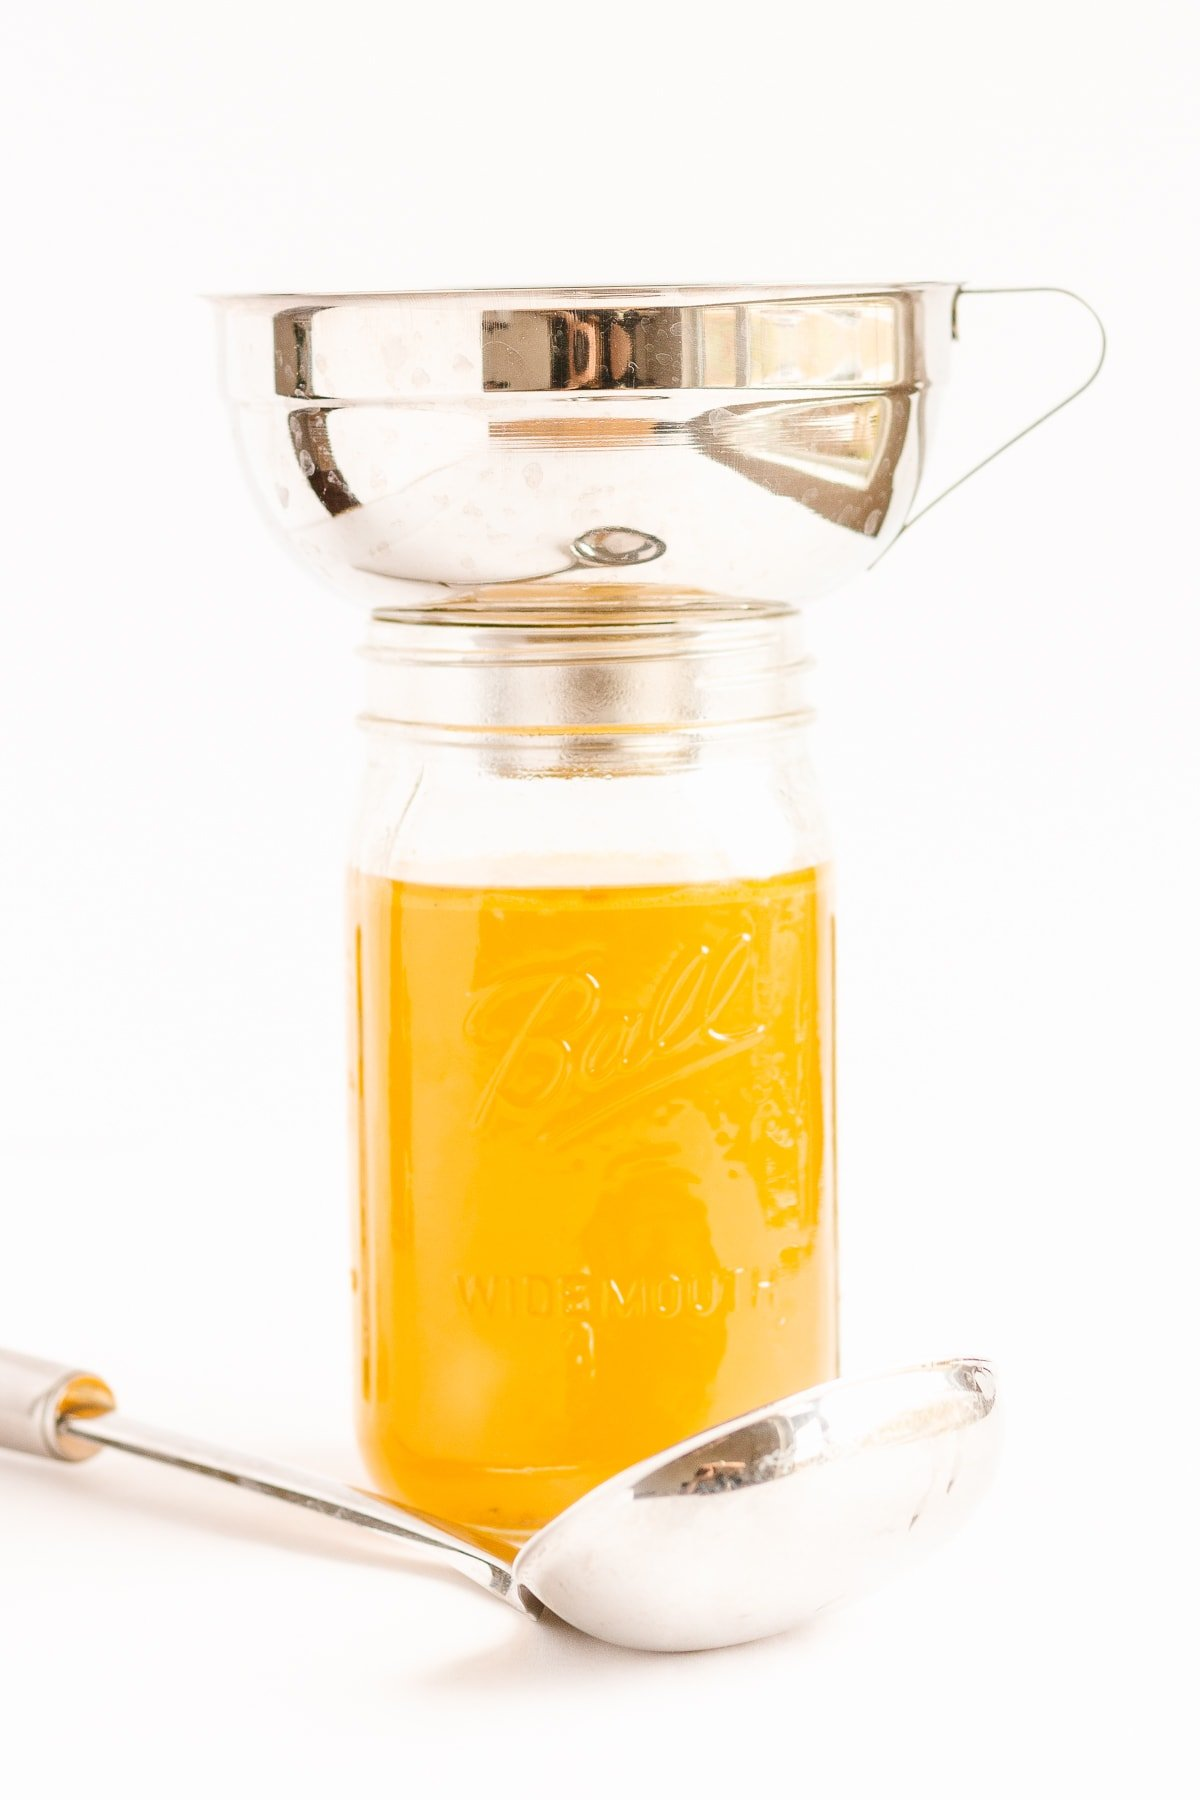 Wide mouth funnel set on top of mason jar filled with broth and ladle lying in front.